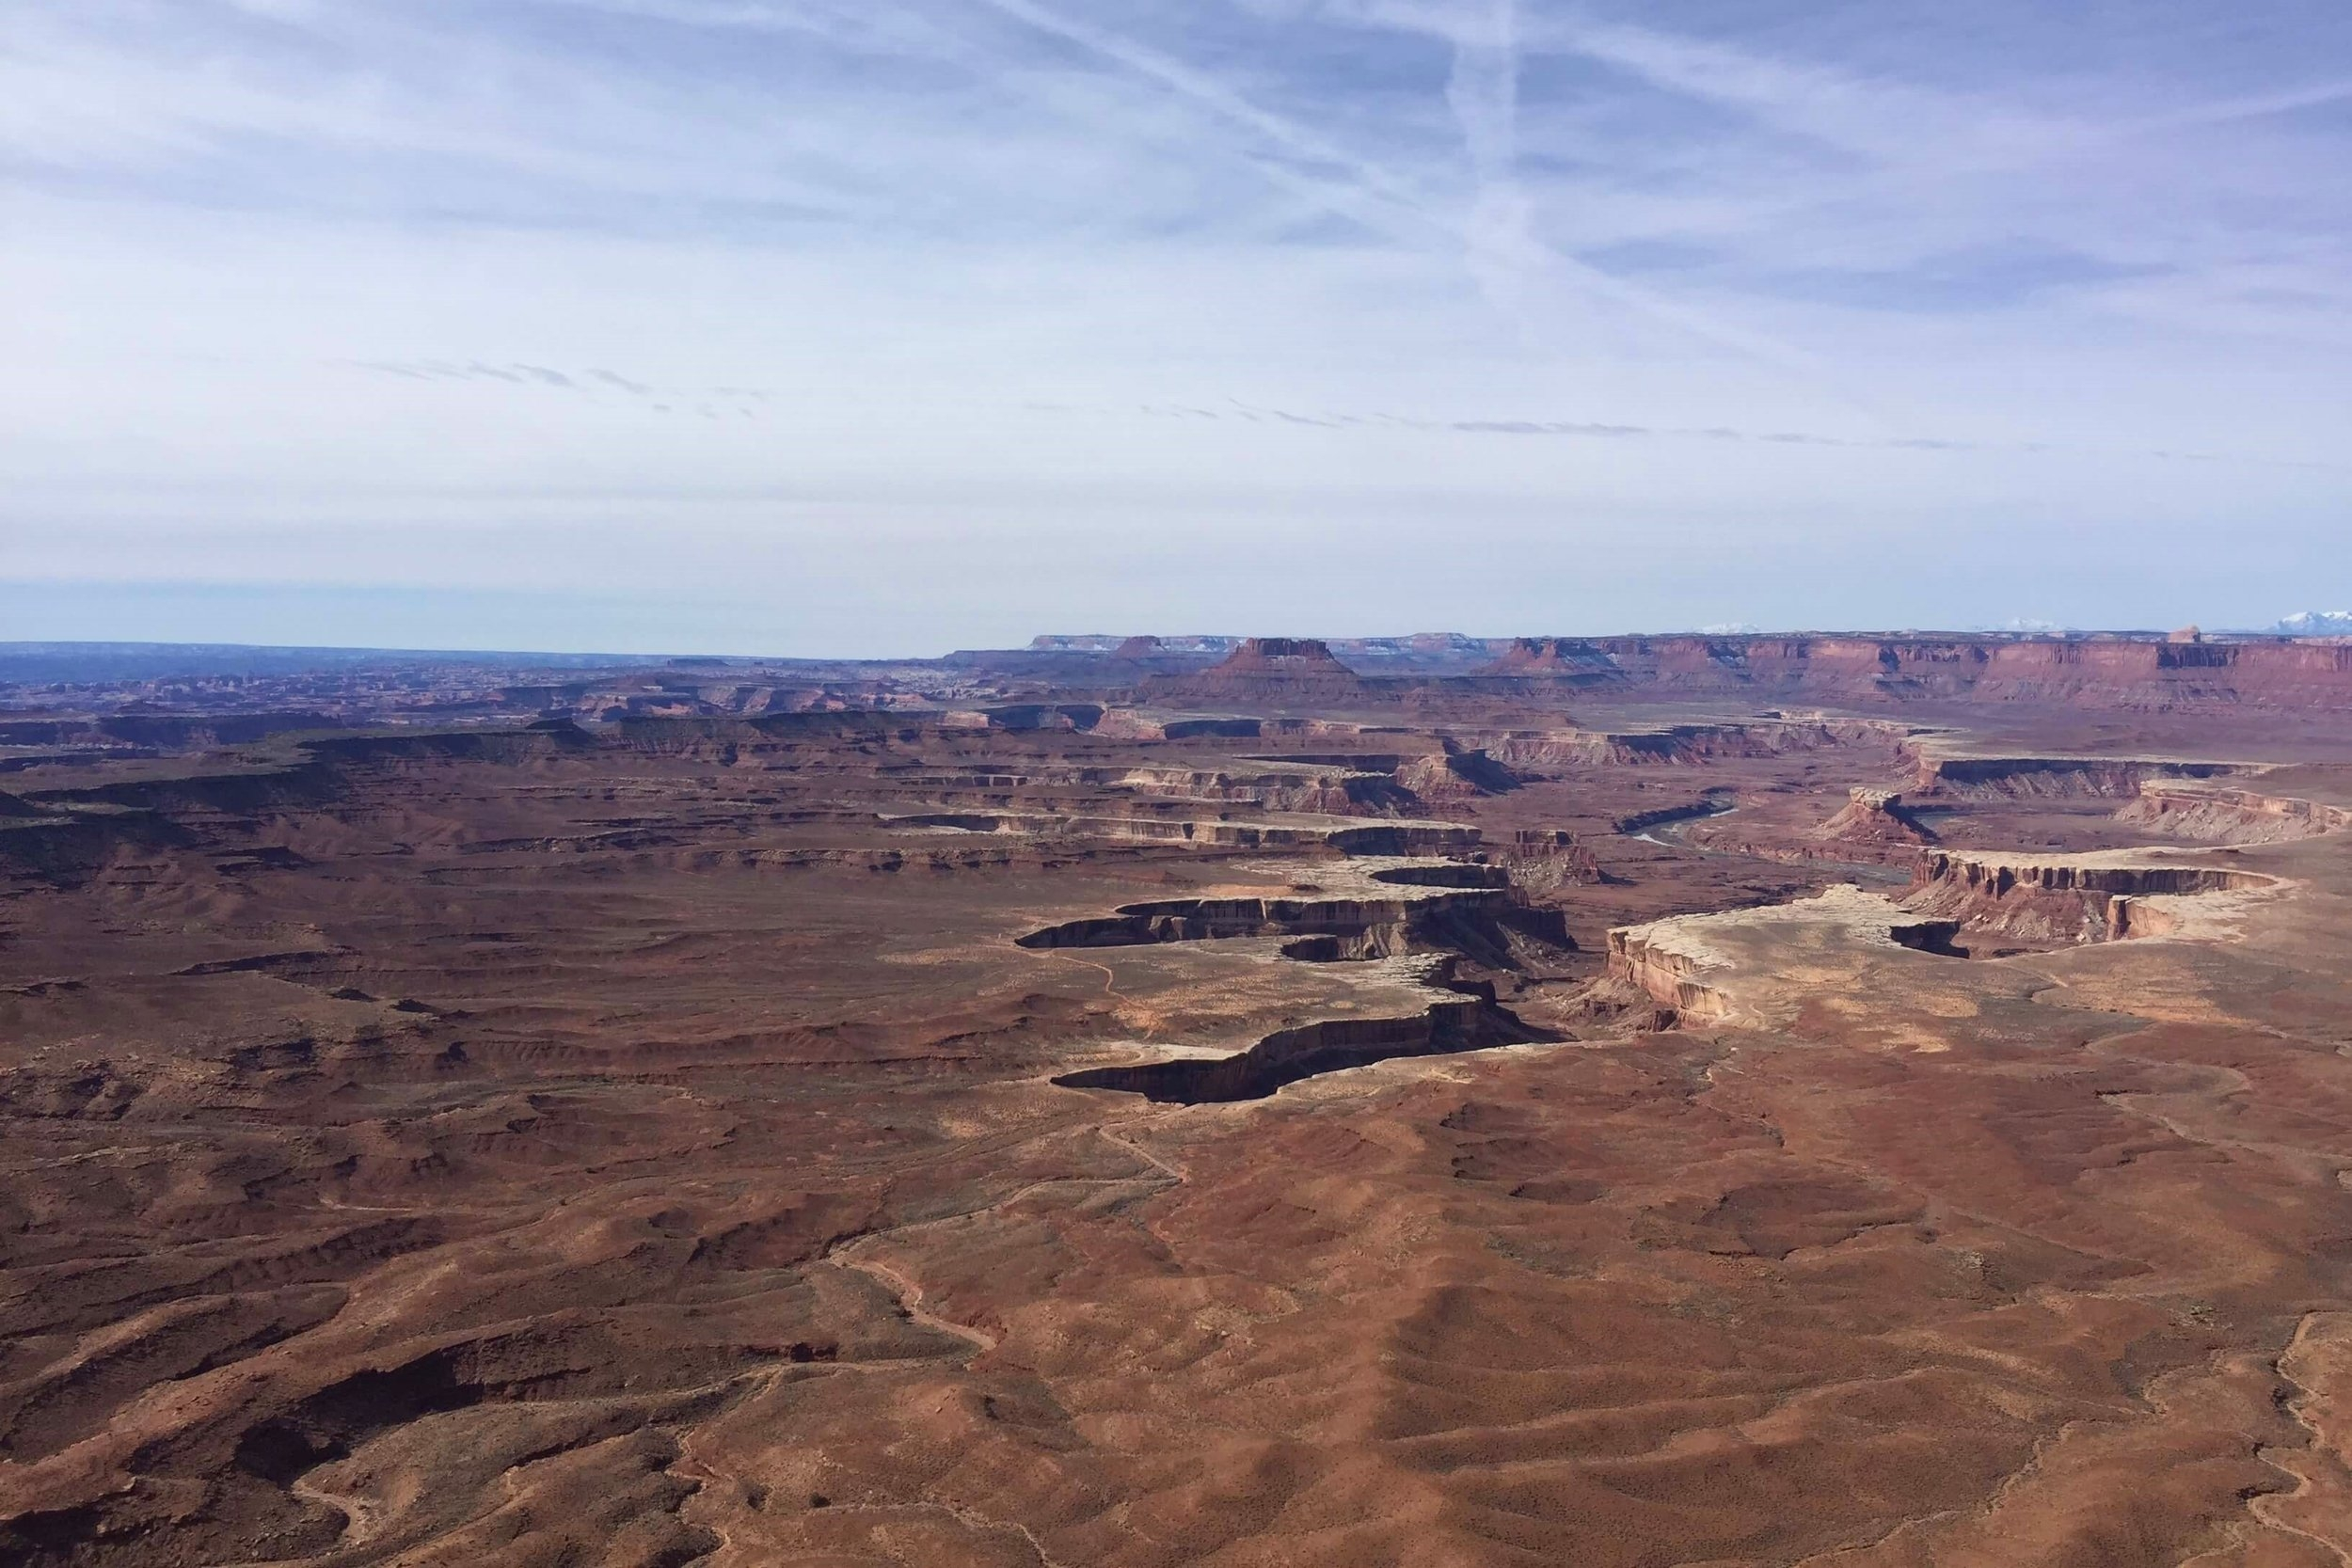 Canyon Inception at its finest with Green River cutting through Canyonlands National Park.